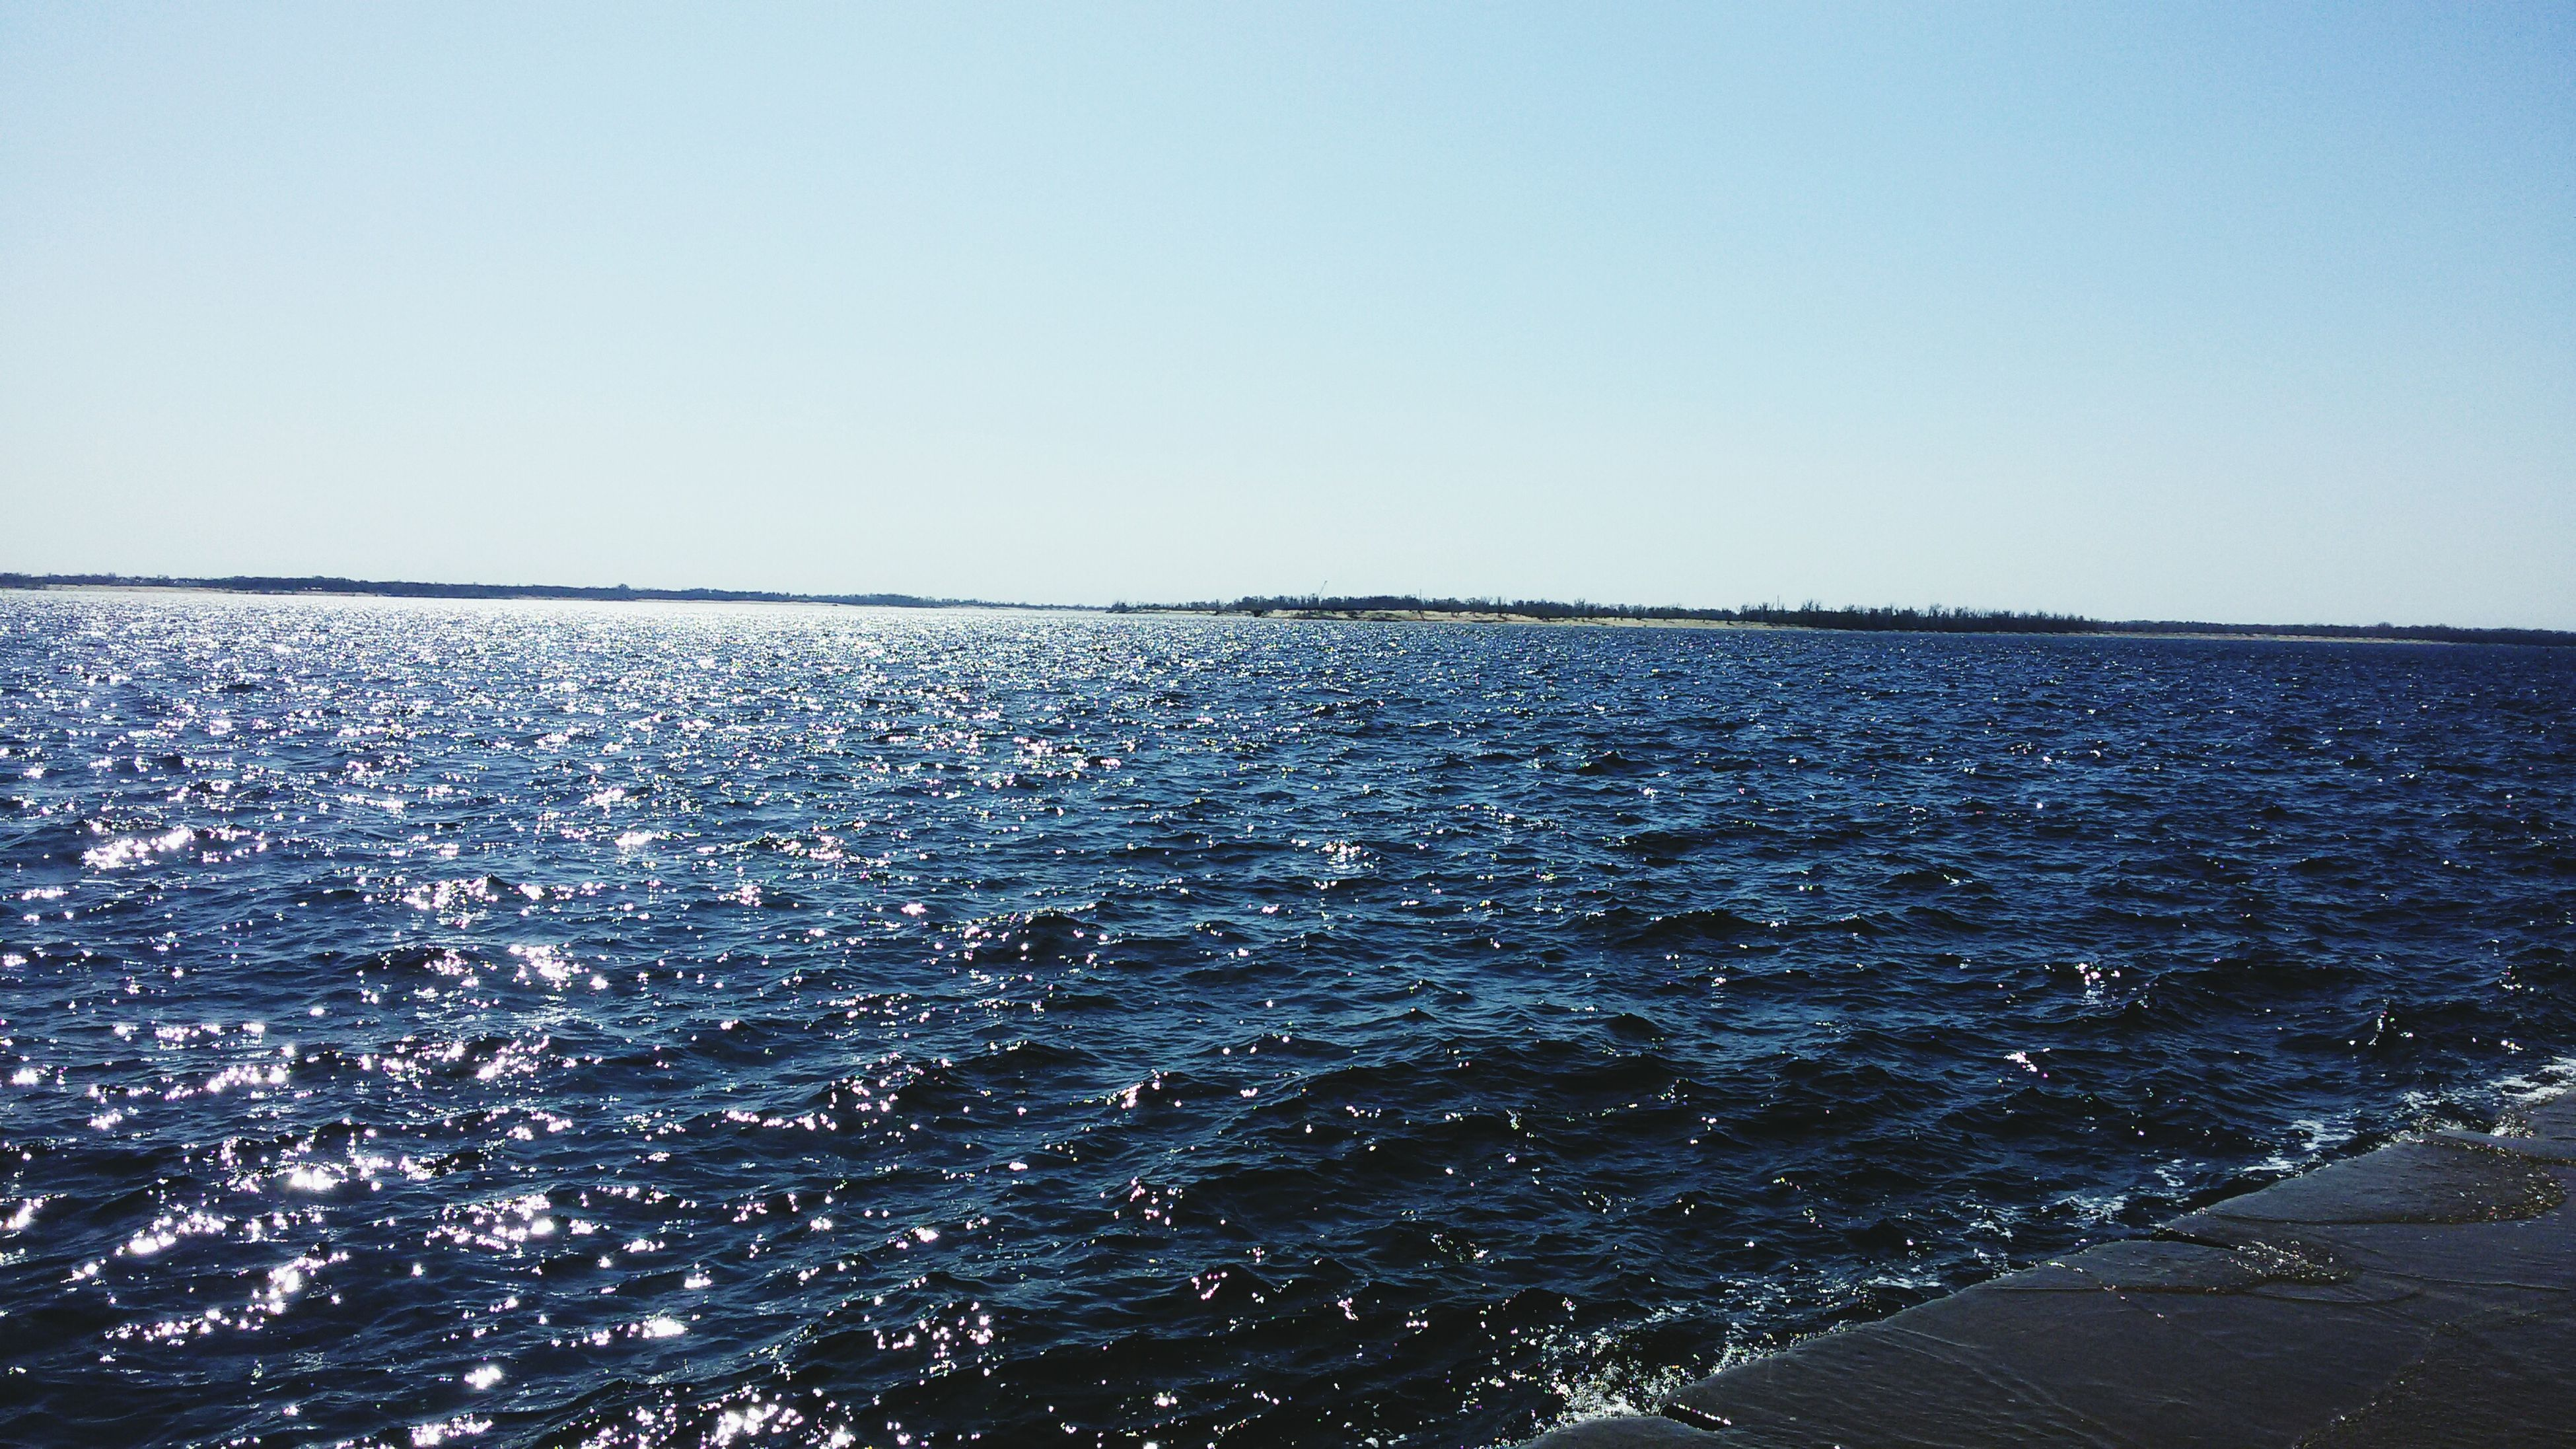 water, clear sky, copy space, sea, tranquil scene, tranquility, scenics, beauty in nature, rippled, waterfront, nature, blue, horizon over water, idyllic, day, outdoors, no people, remote, seascape, sky